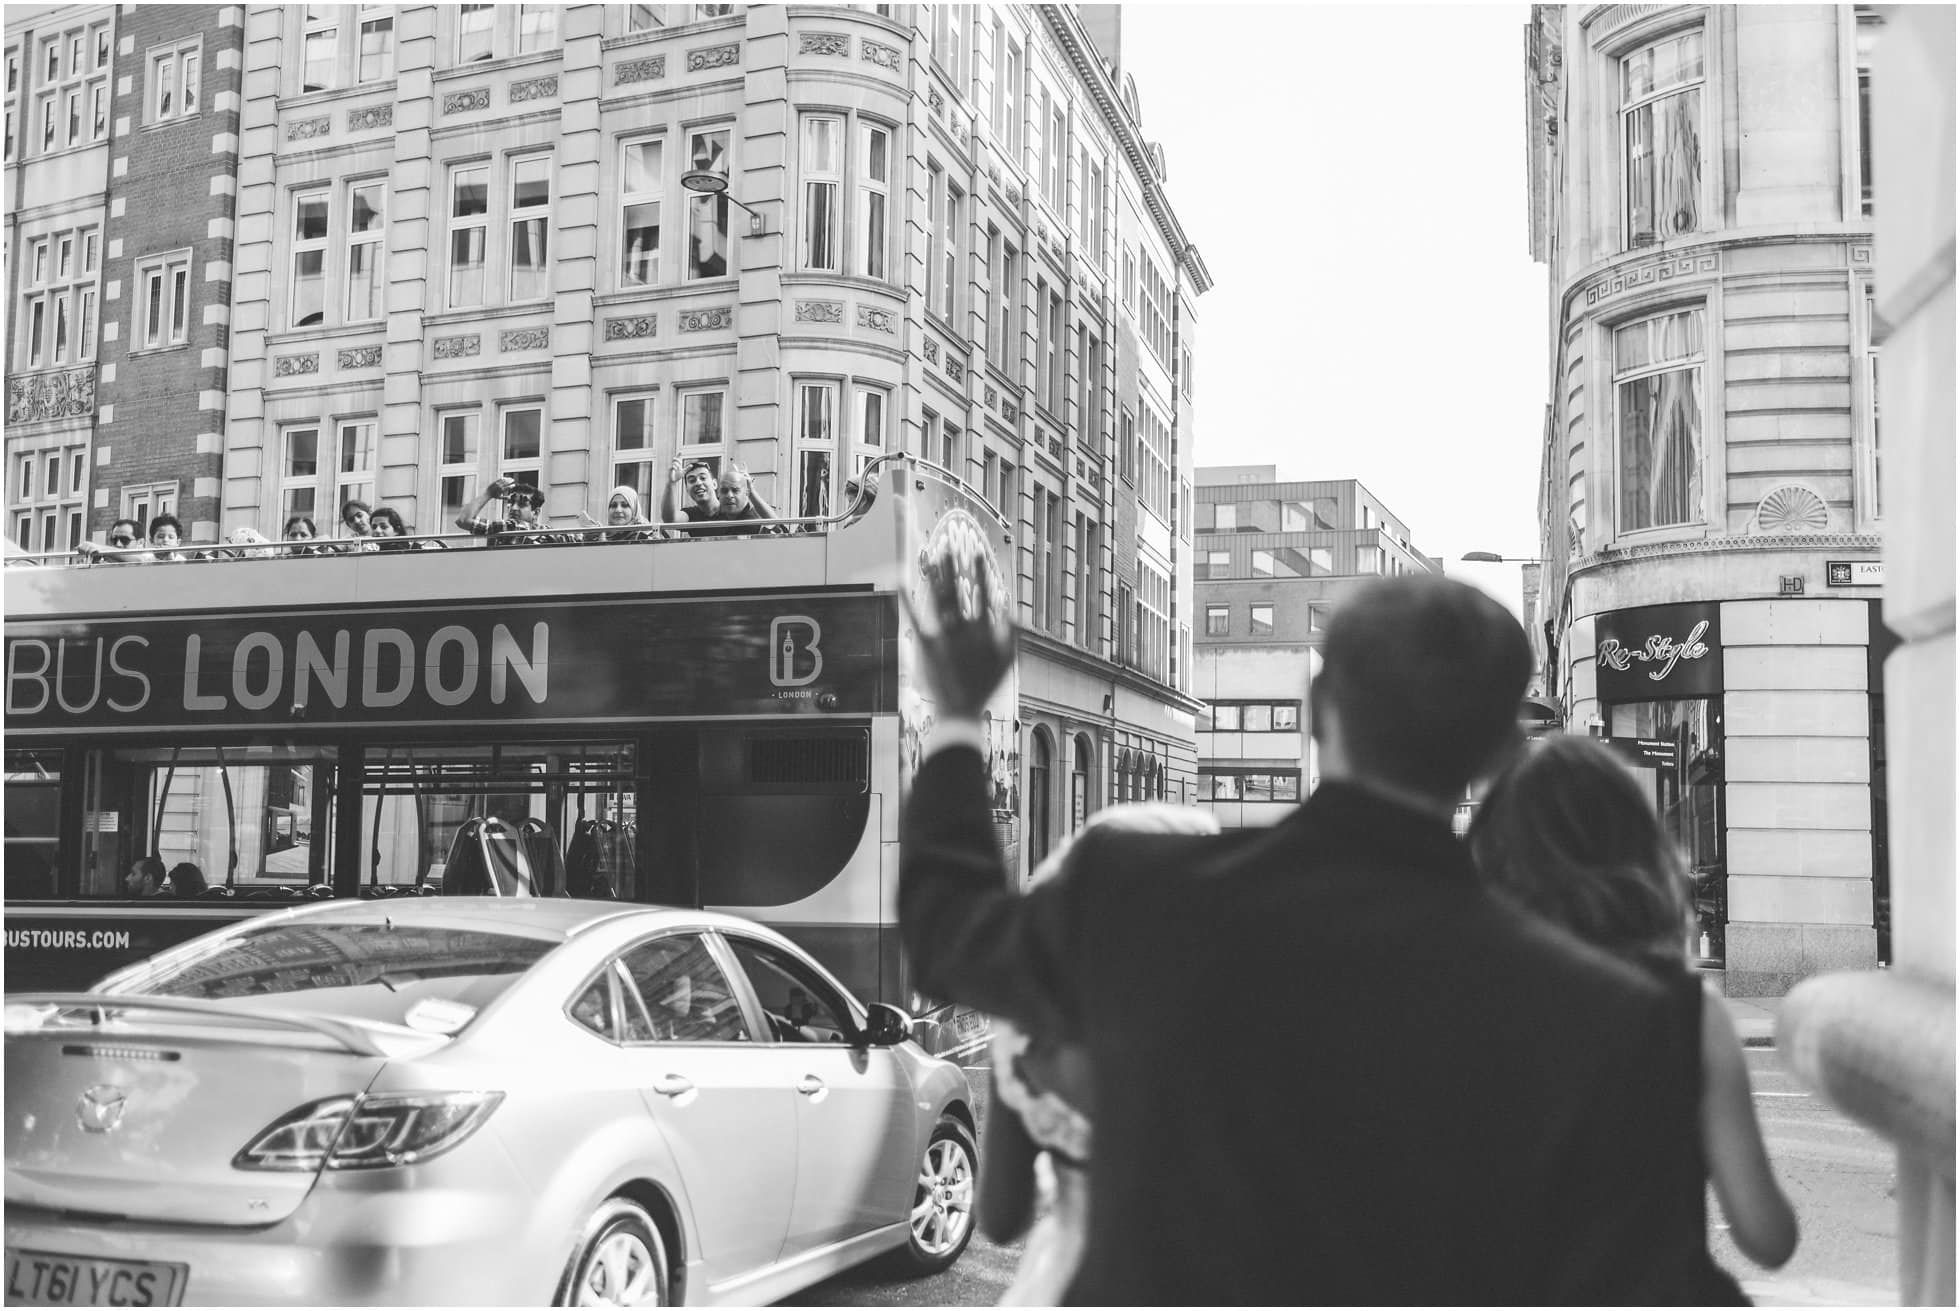 Waving to the passing tourists in London